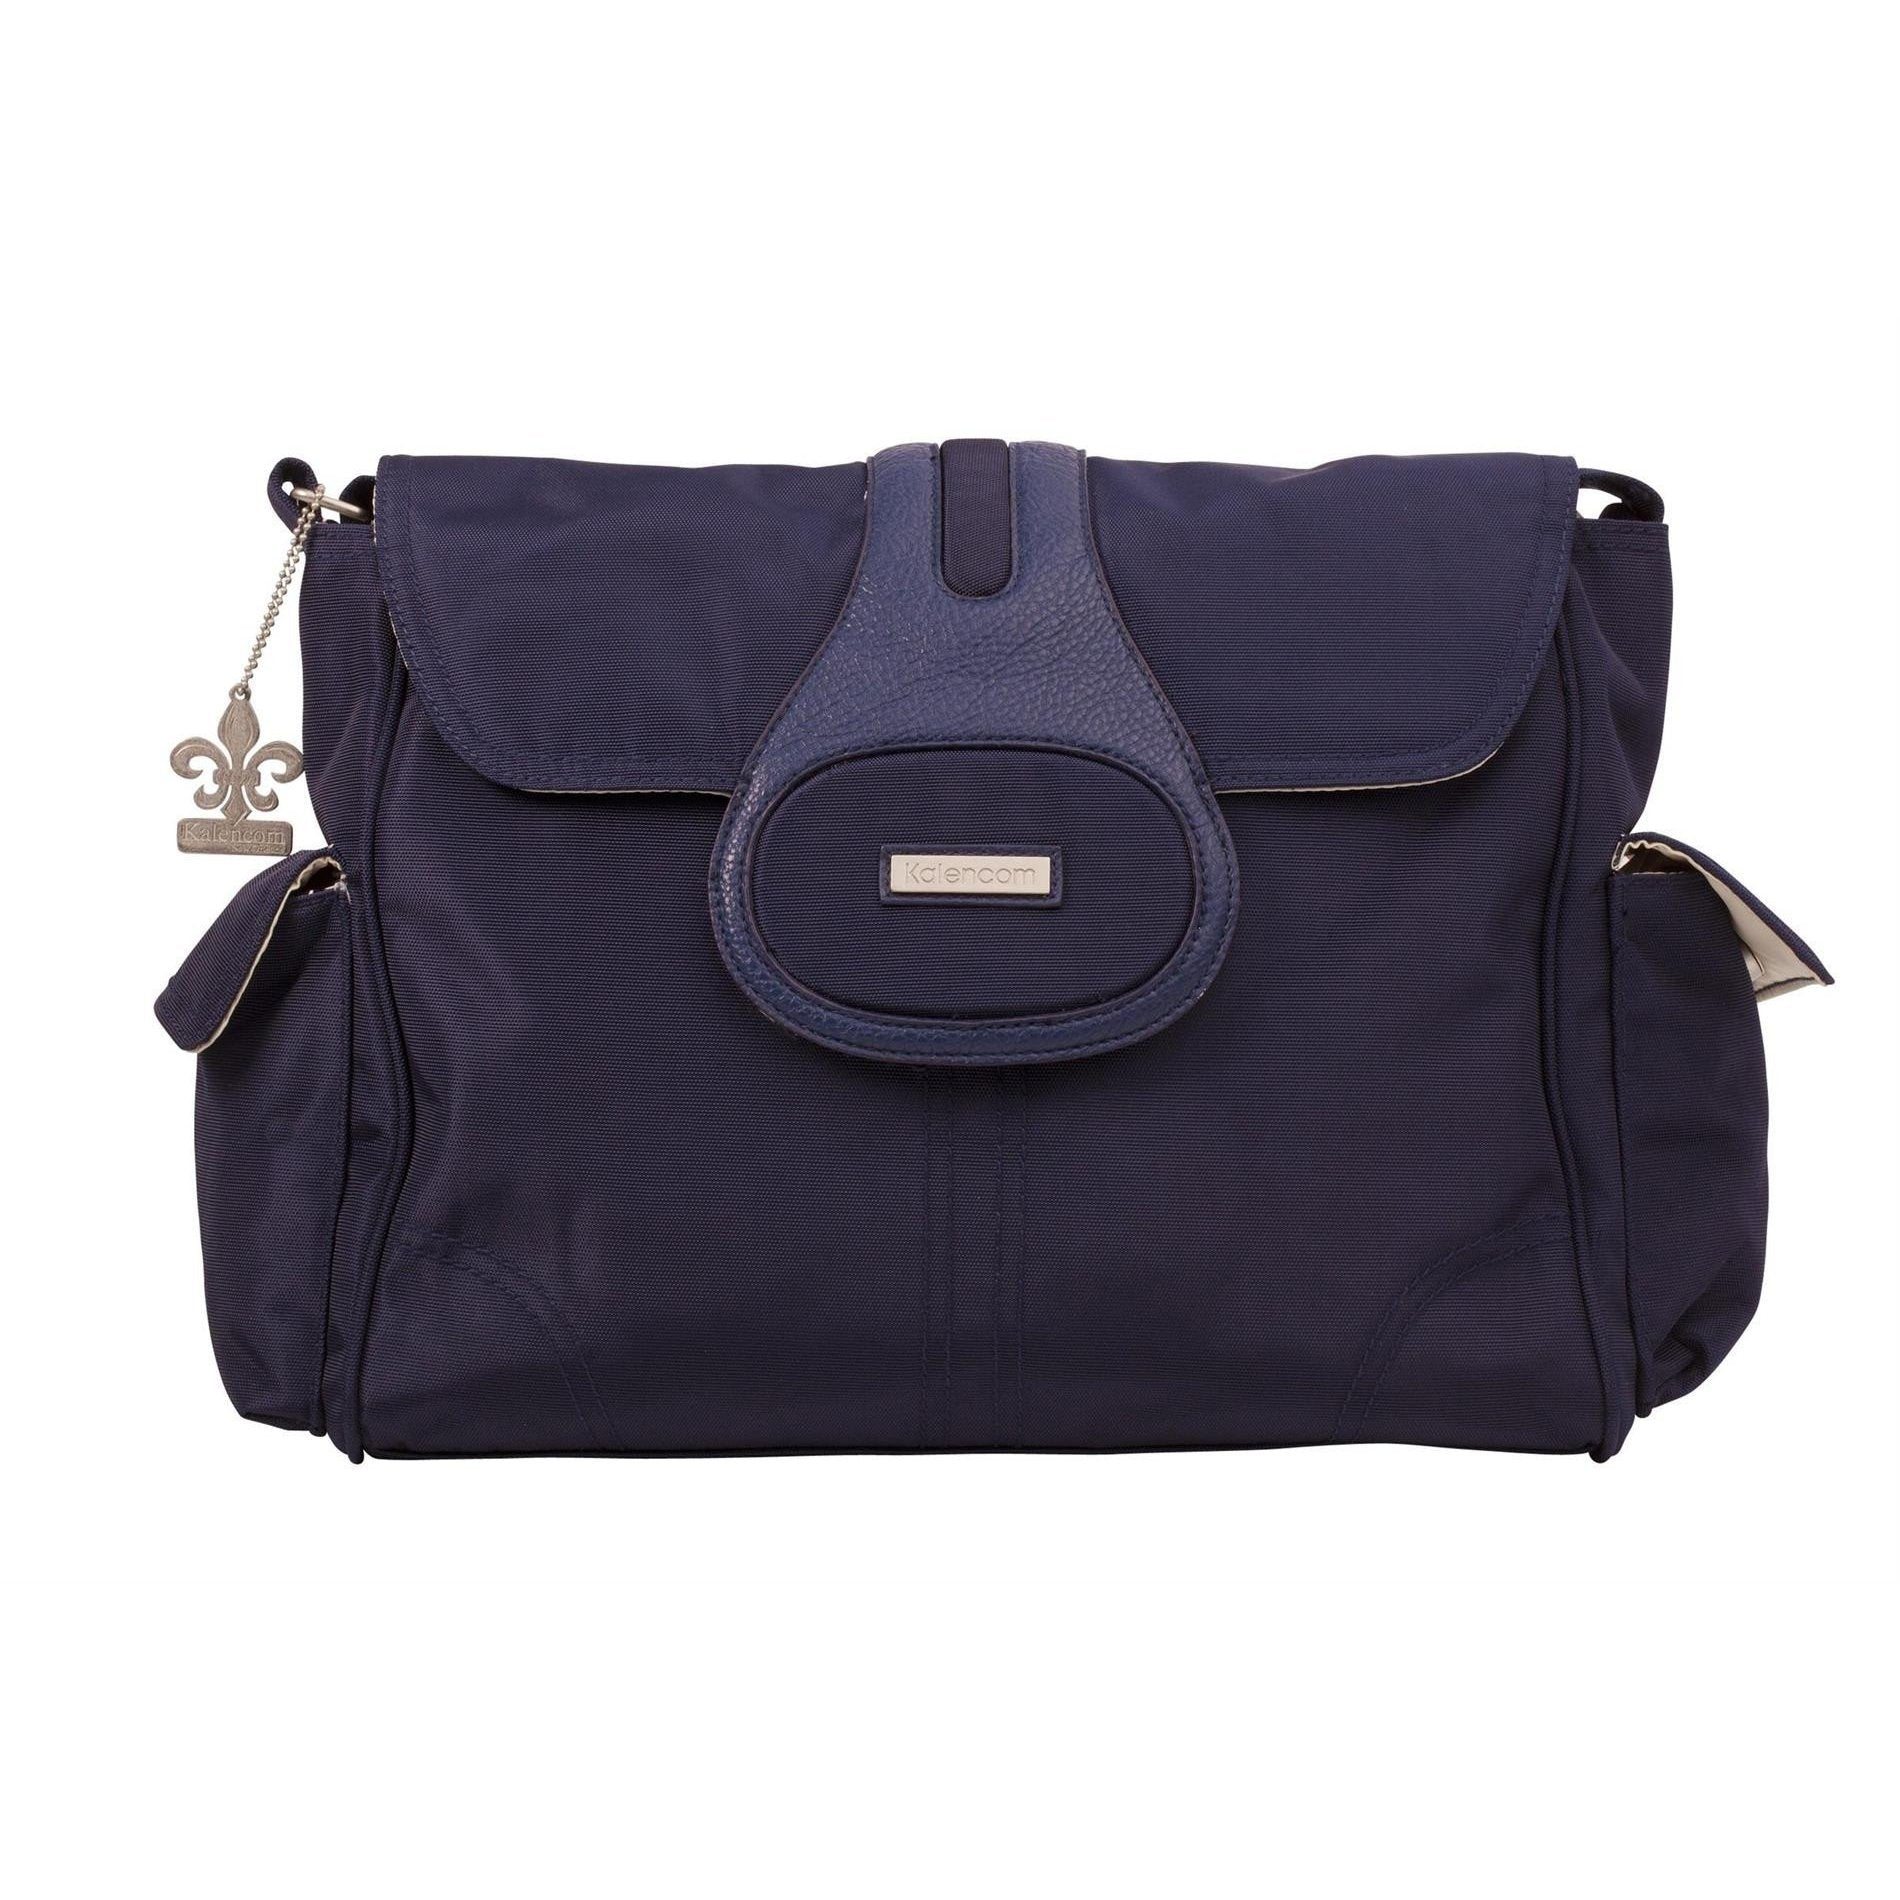 Navy Elite Diaper Bag | Style 2975 - Kalencom-Diaper Bags-Default-Jack and Jill Boutique